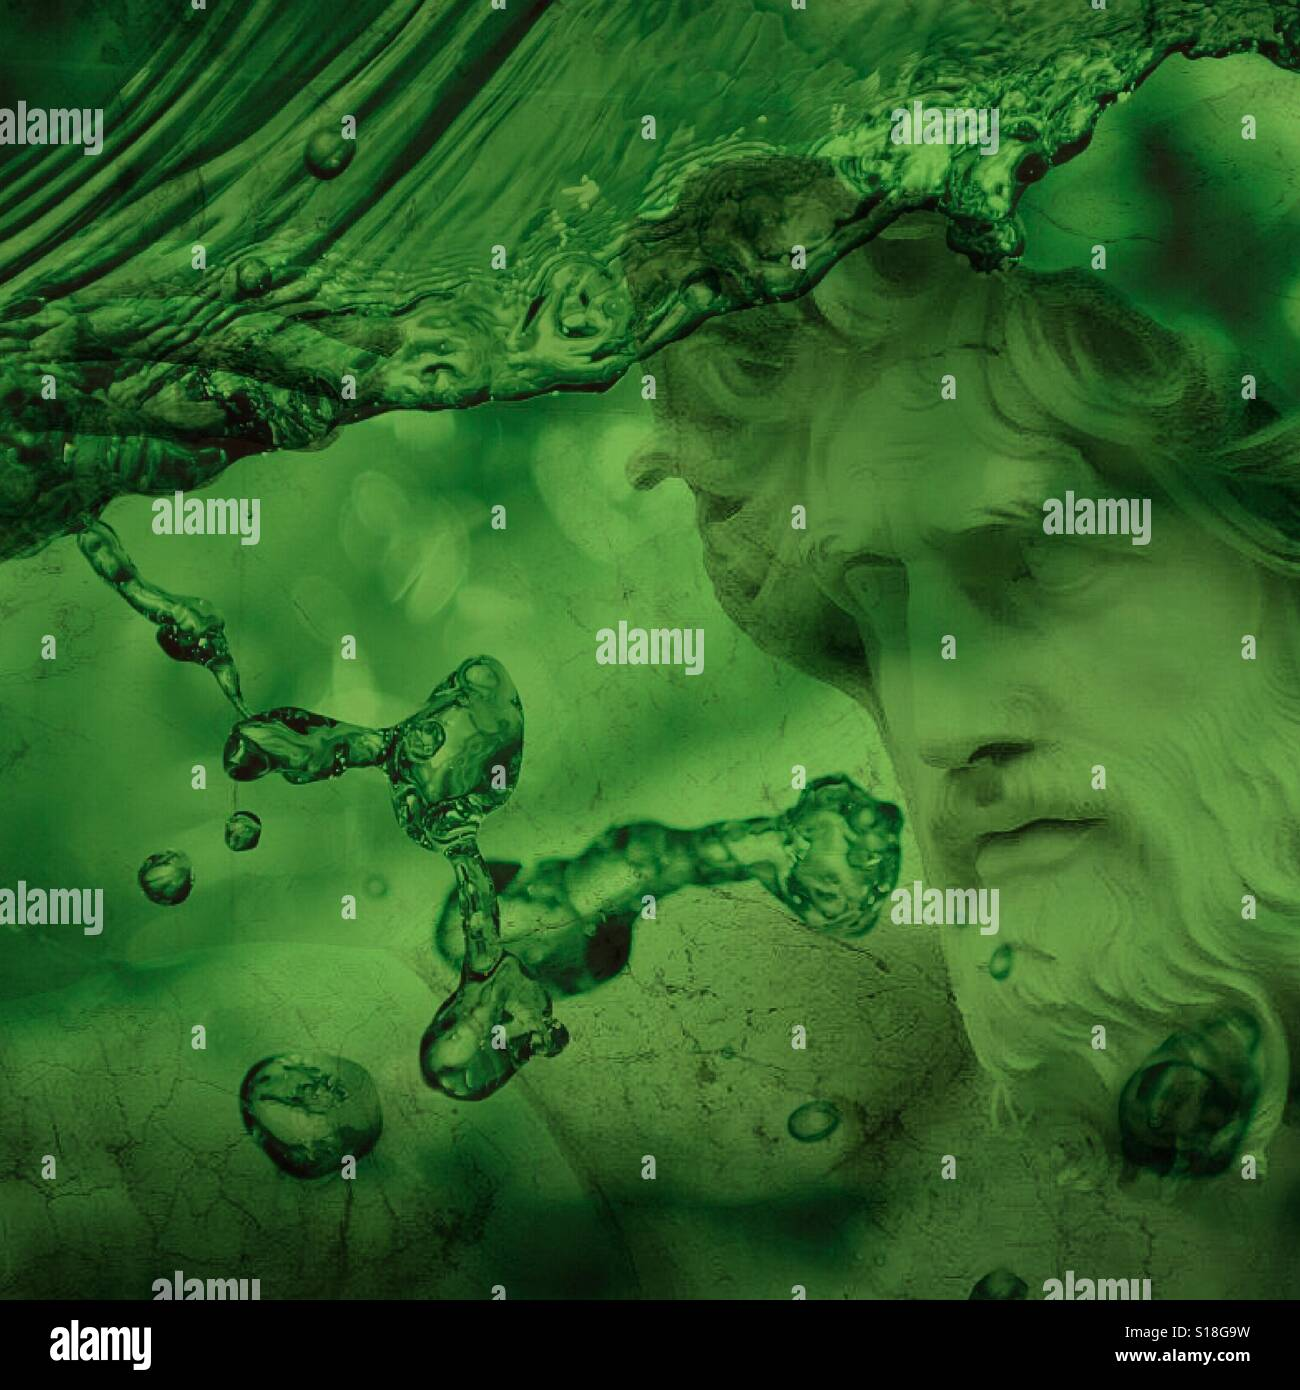 Roman God caught in green water - Stock Image